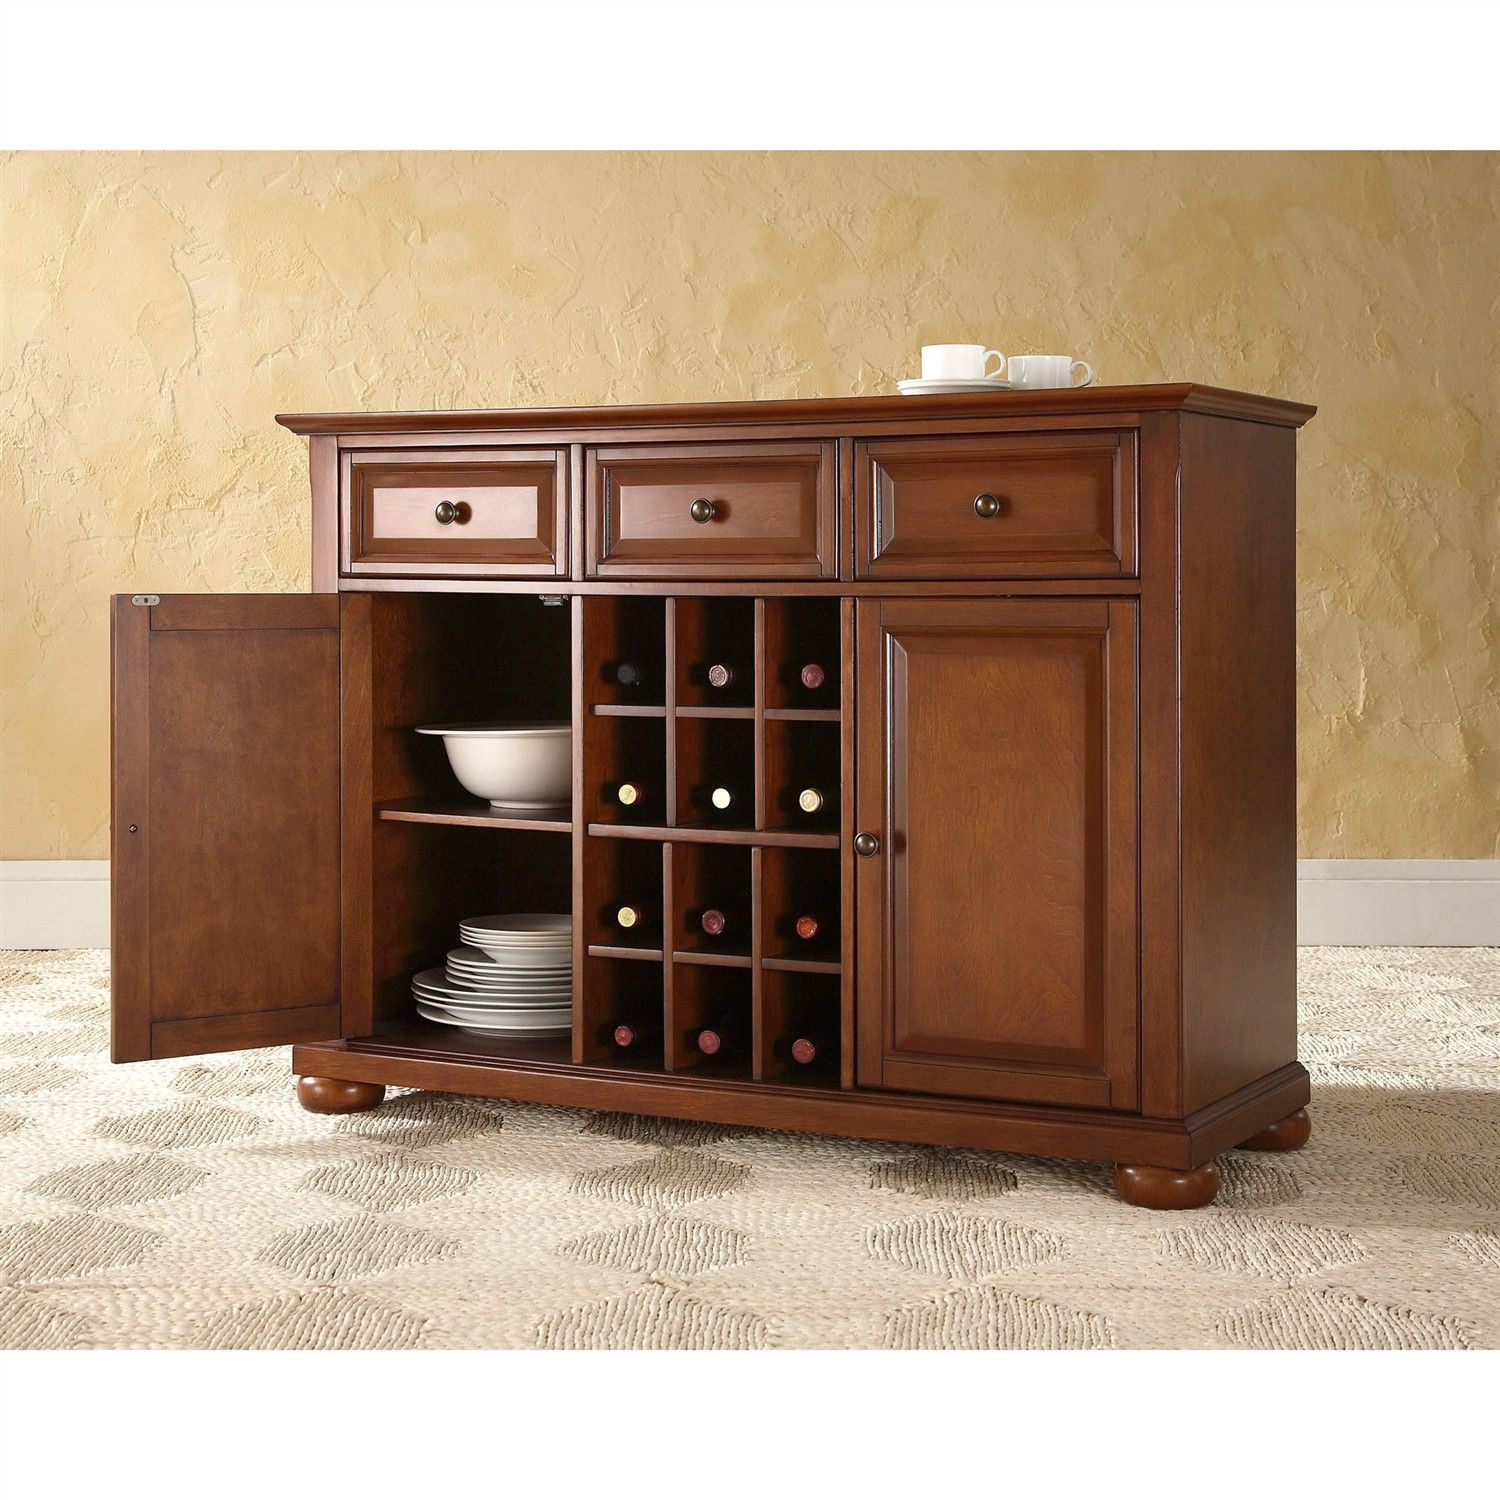 Room The Smart Design Of This Cherry Finish Sideboard Buffet Table Dining Storage Cabinet Generates Tons